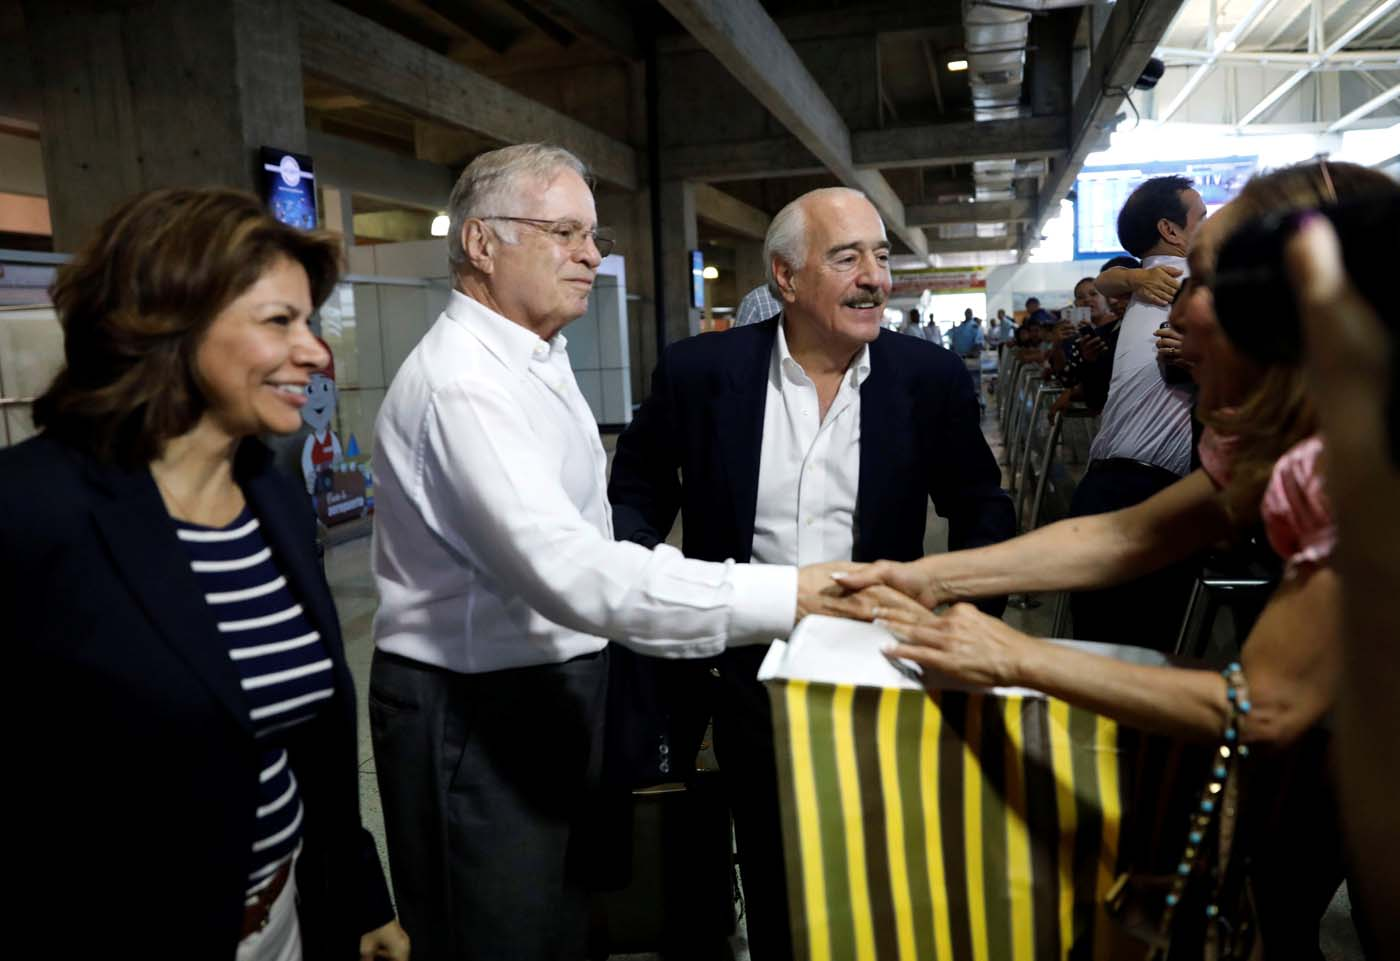 The former presidents of Costa Rica Laura Chinchilla and Miguel Angel Rodriguez and Colombia's former president Andres Pastrana arrive at Caracas airport ahead of an unofficial referendum called by the opposition in Venezuela July 15, 2017. REUTERS/Andres Martinez Casares